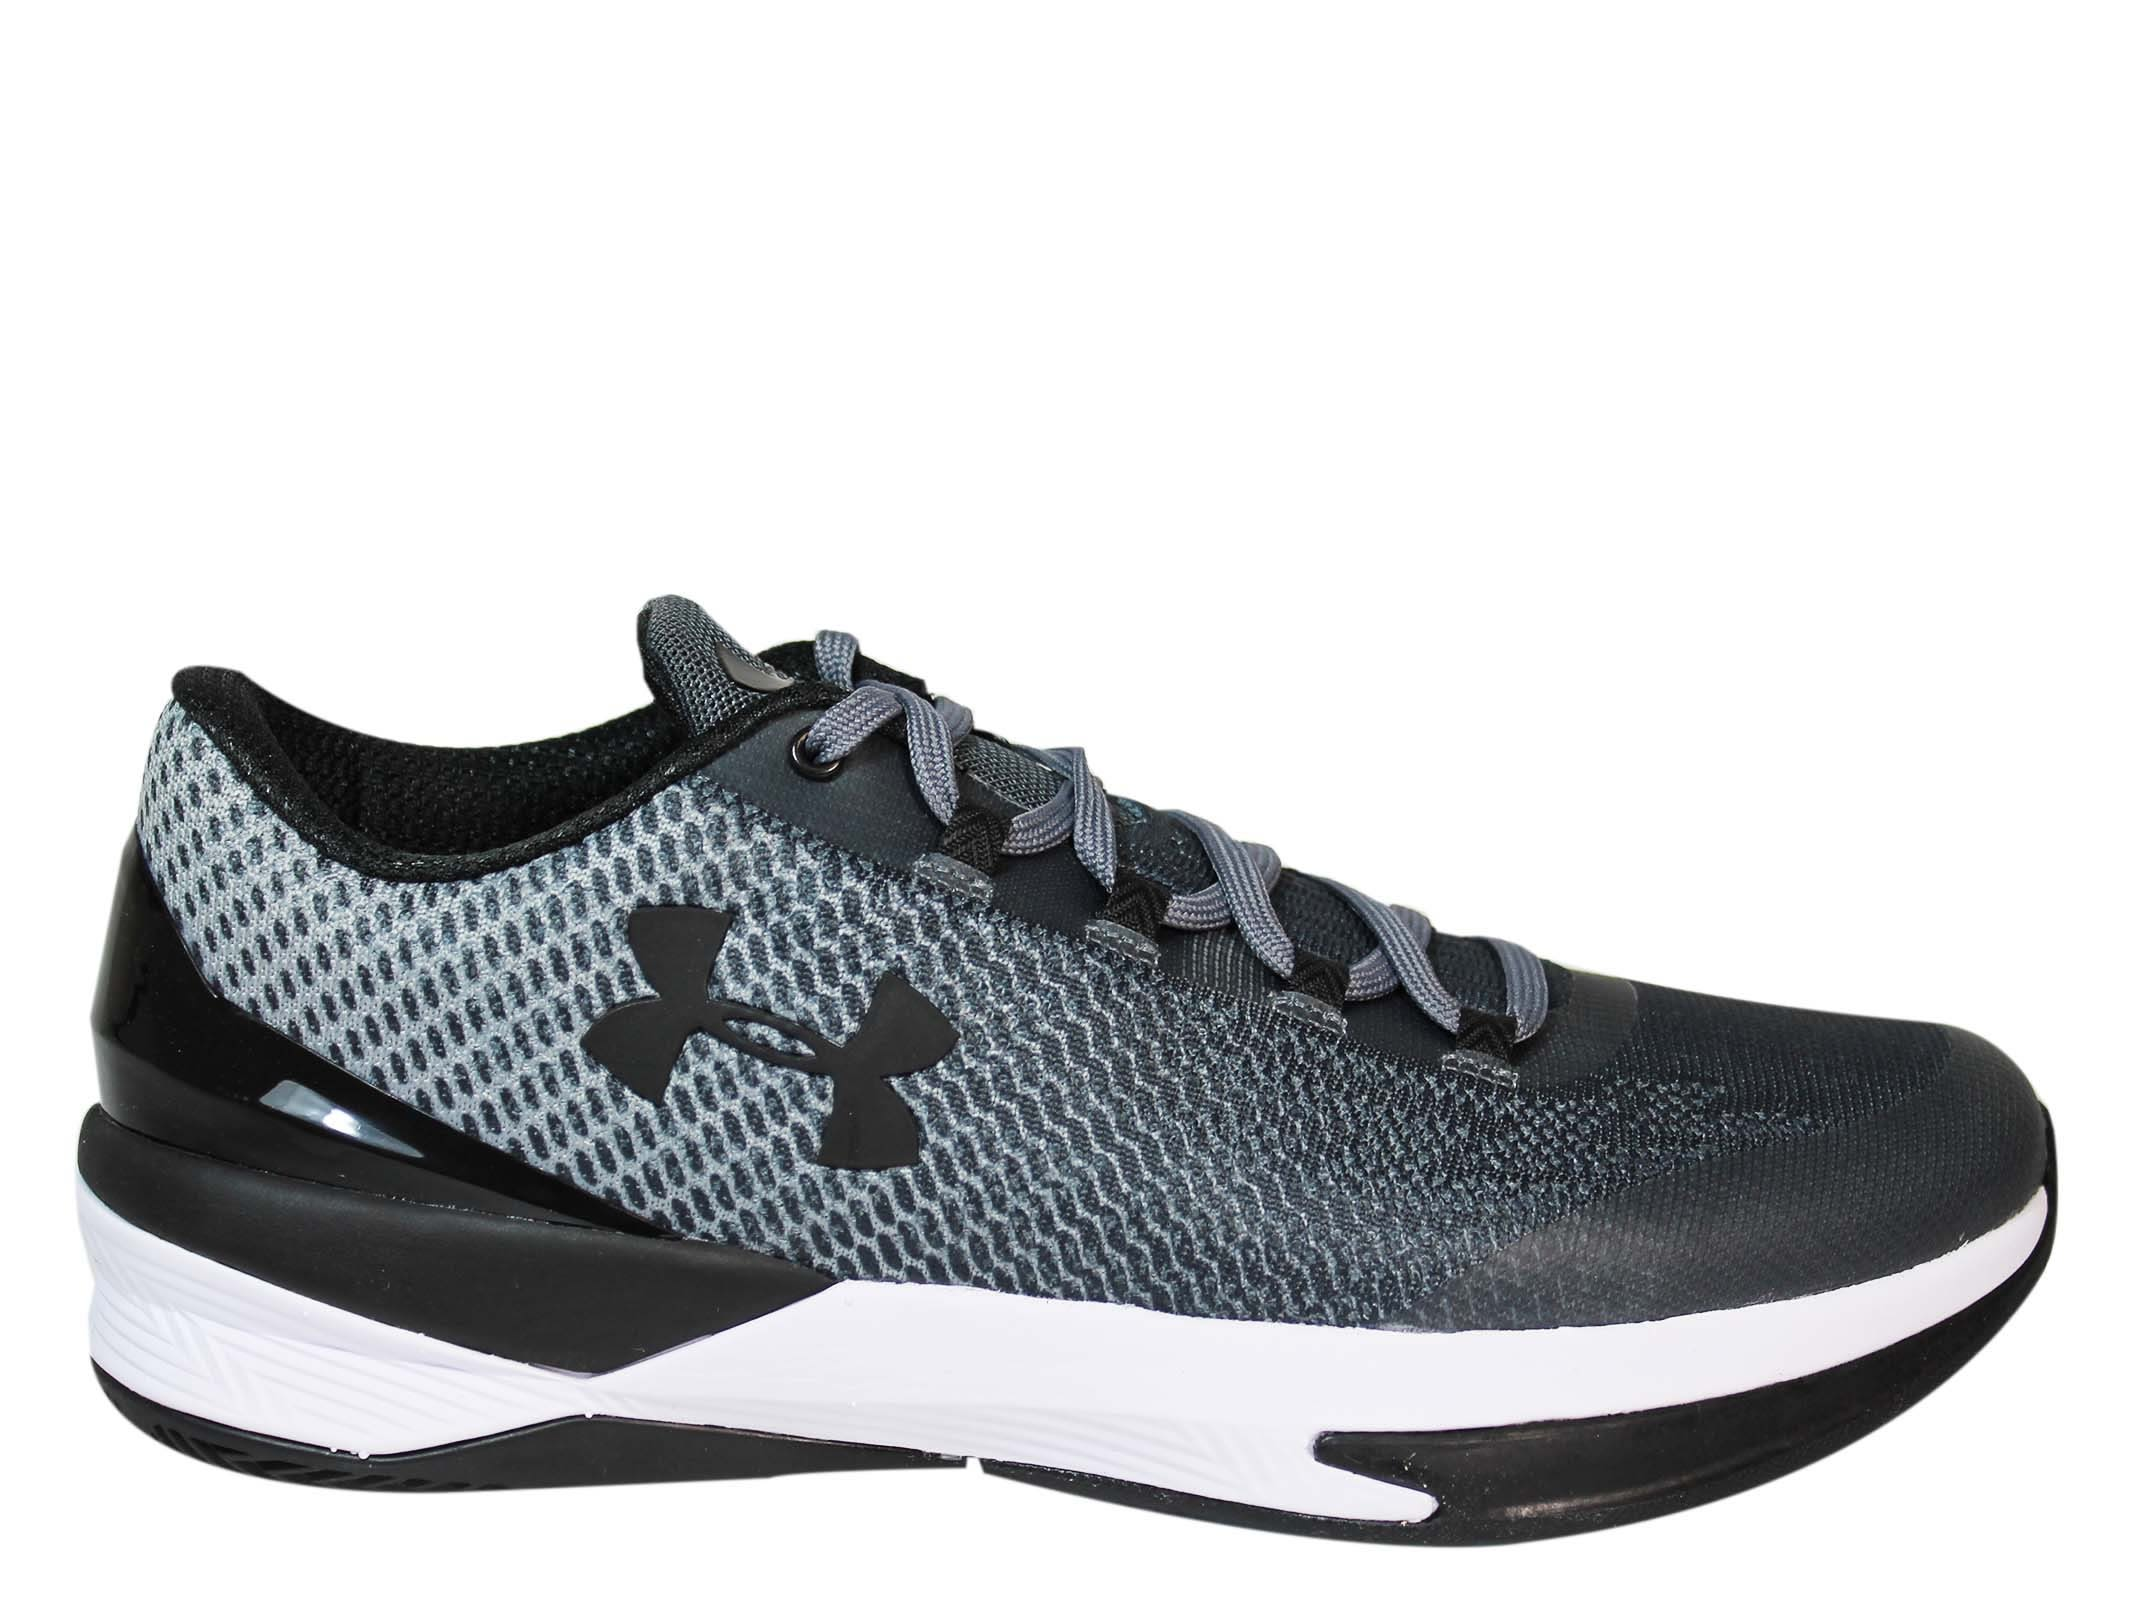 Under Armour Grey Charged Controller Low Sneakers